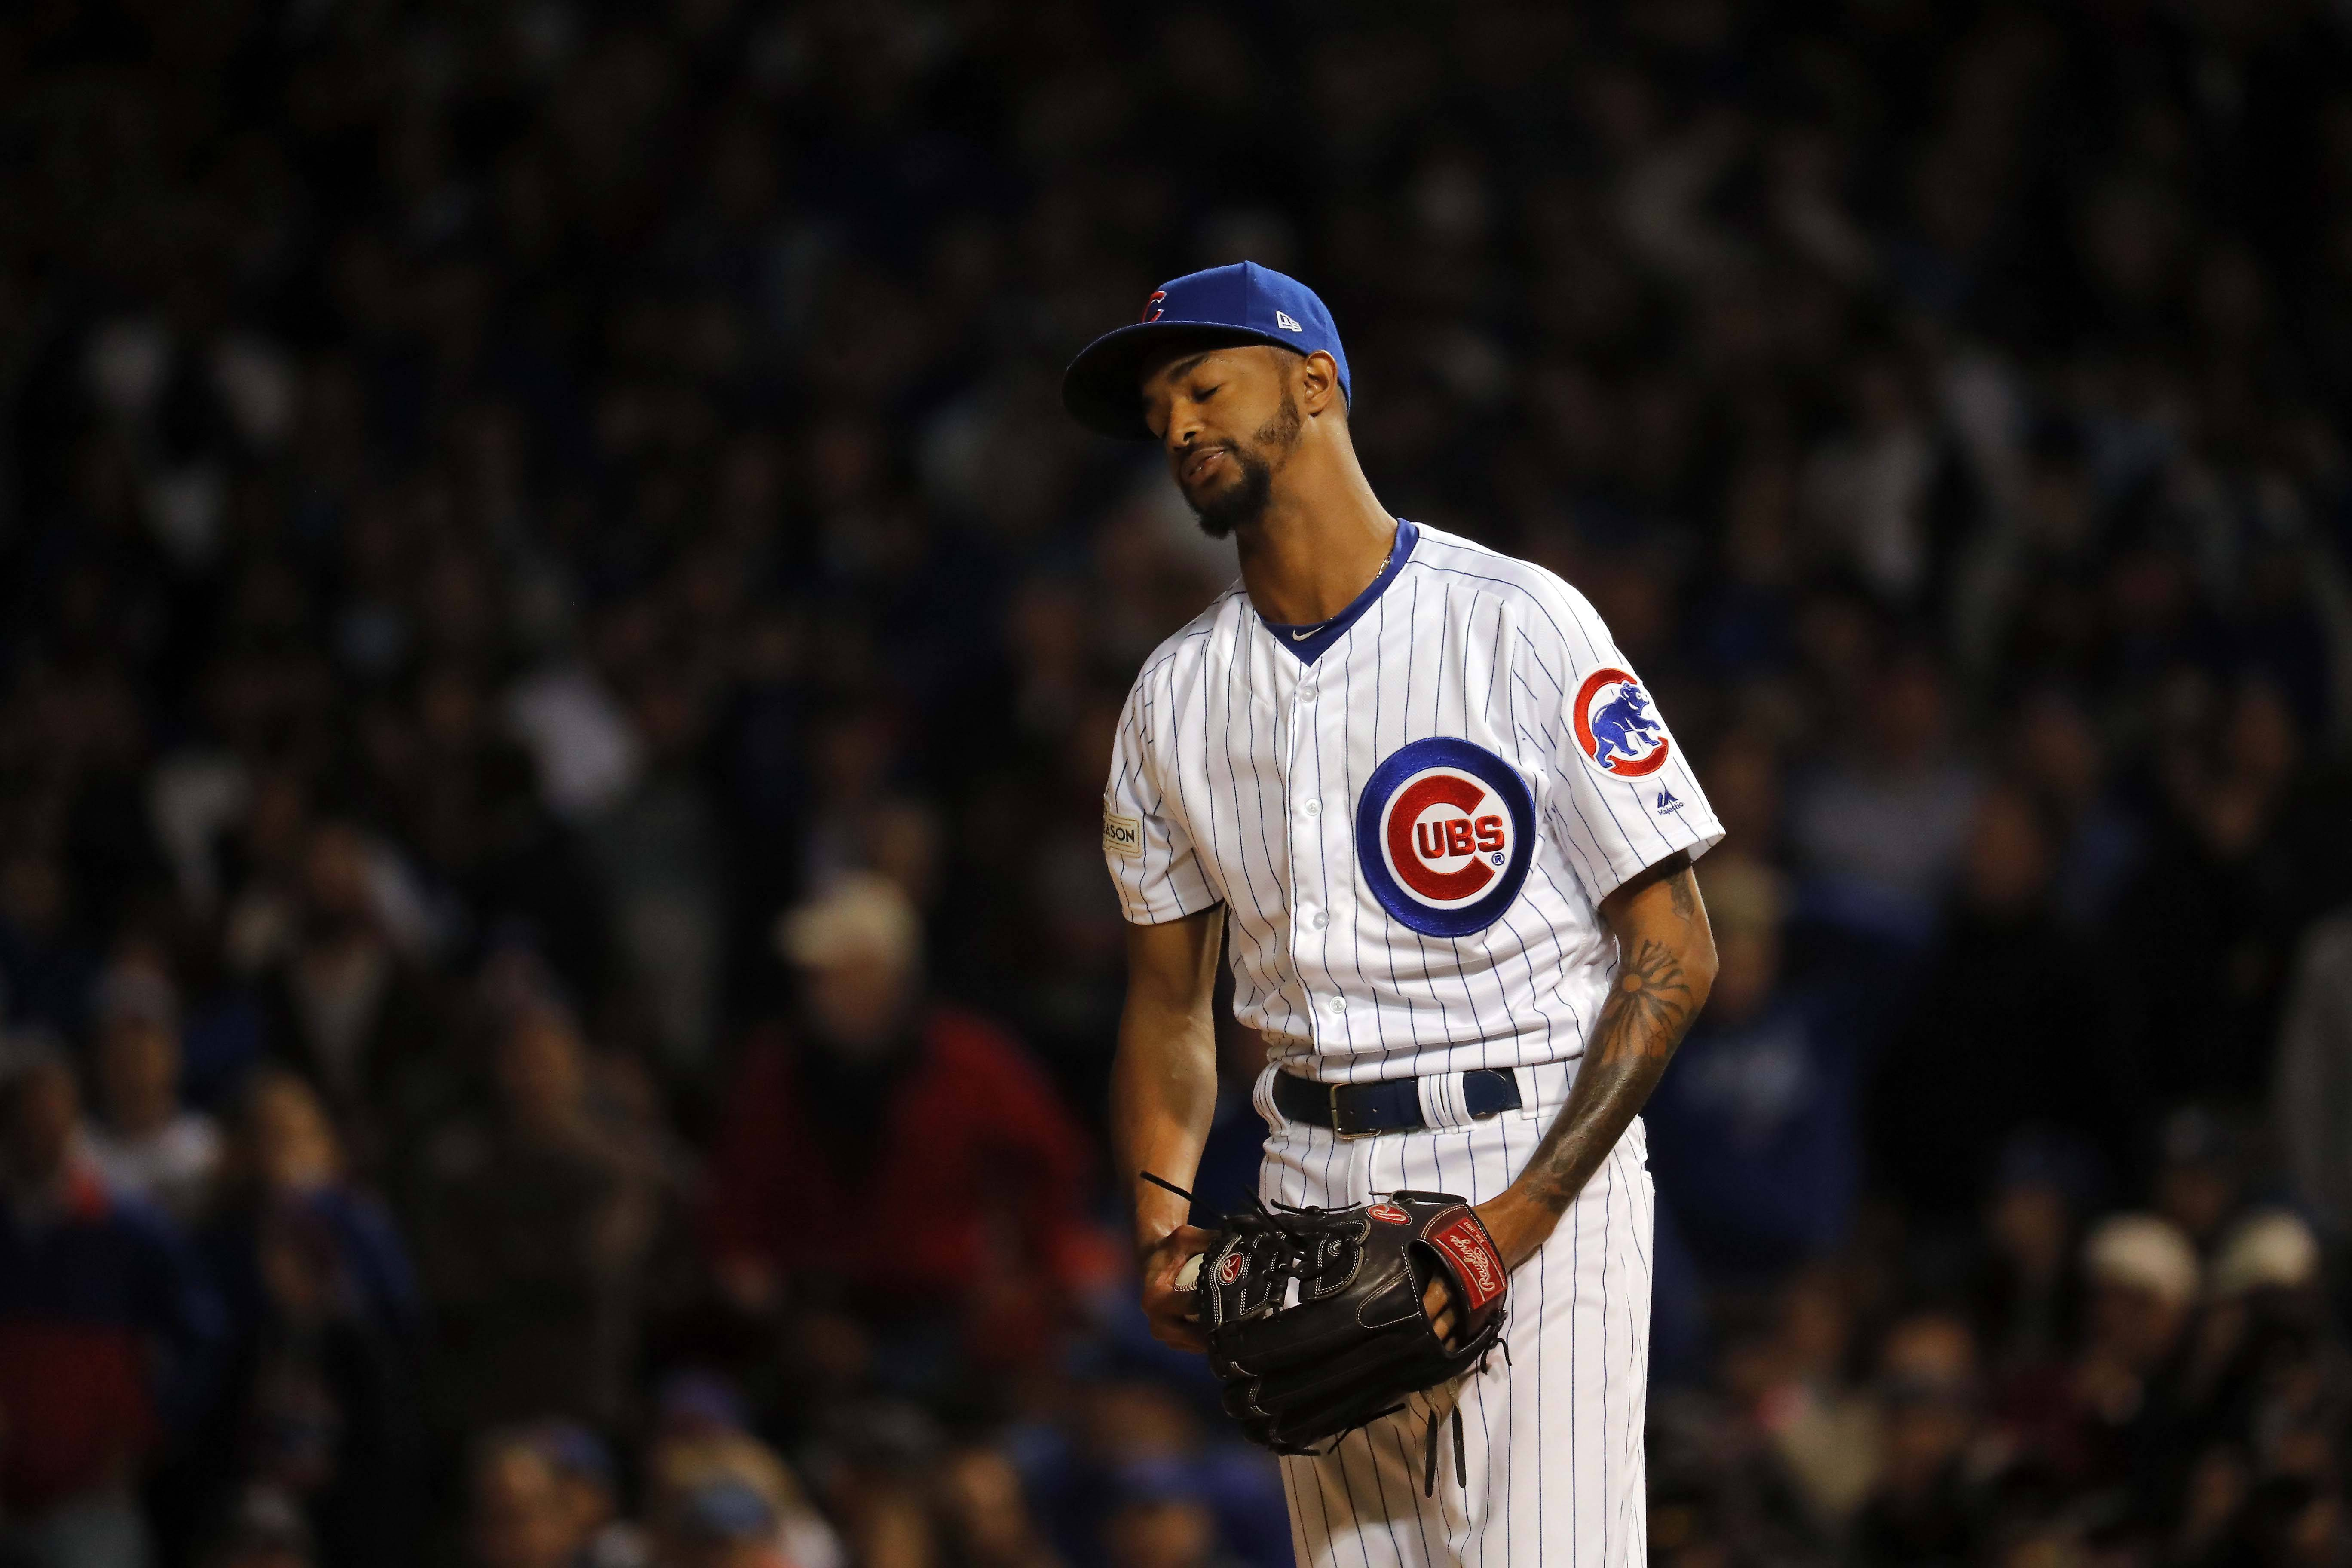 Cubs lose 6-1 to the Dodgers in game three of the NLCS